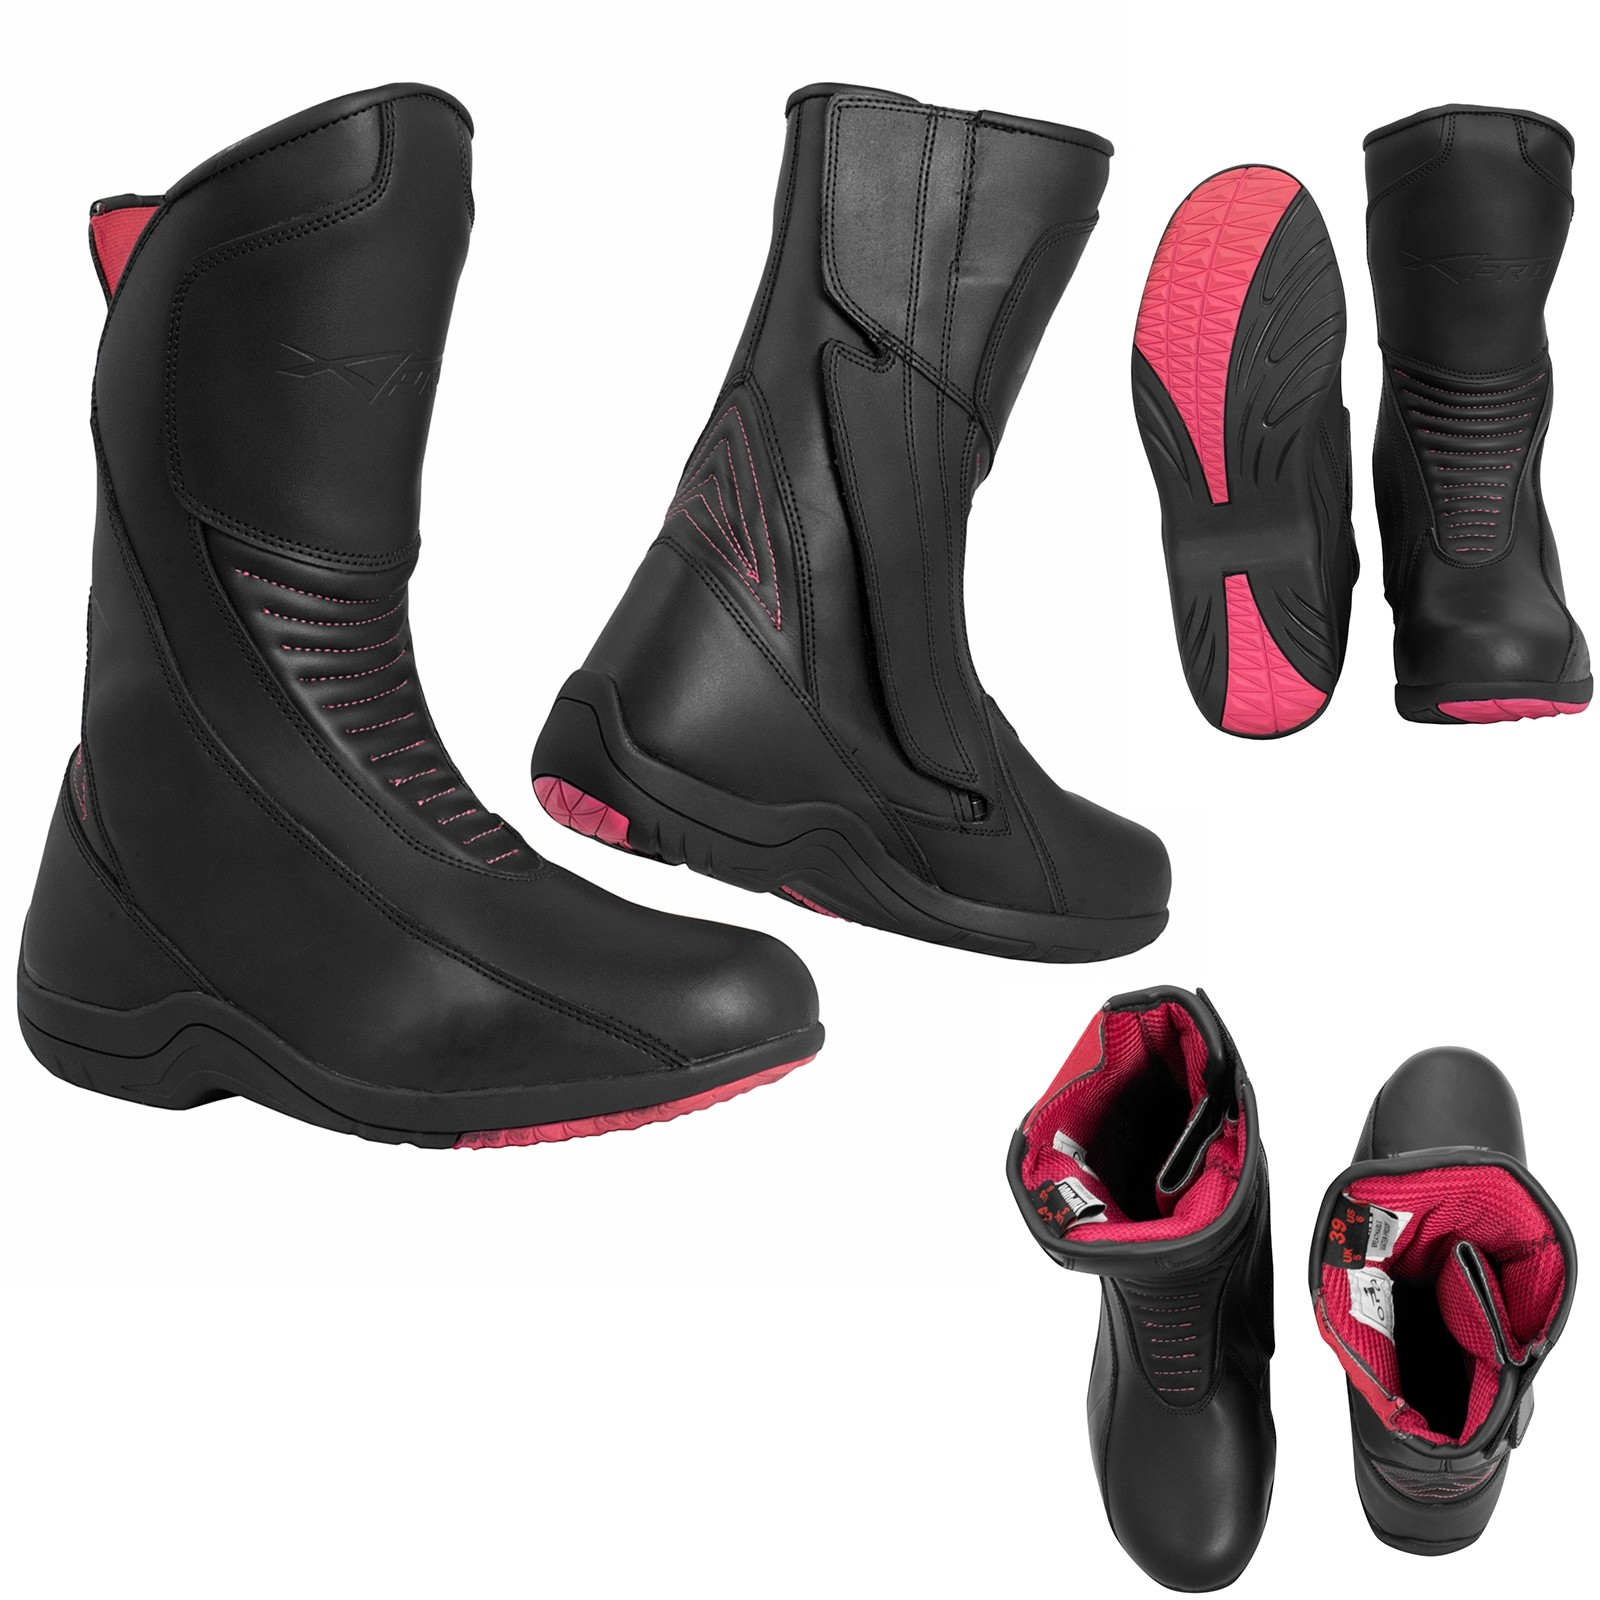 Sally-Boots-Stivali-Motorcycle-Pink-Rosa-Nero-Black-Sonic-Moto-A-Pro-Set